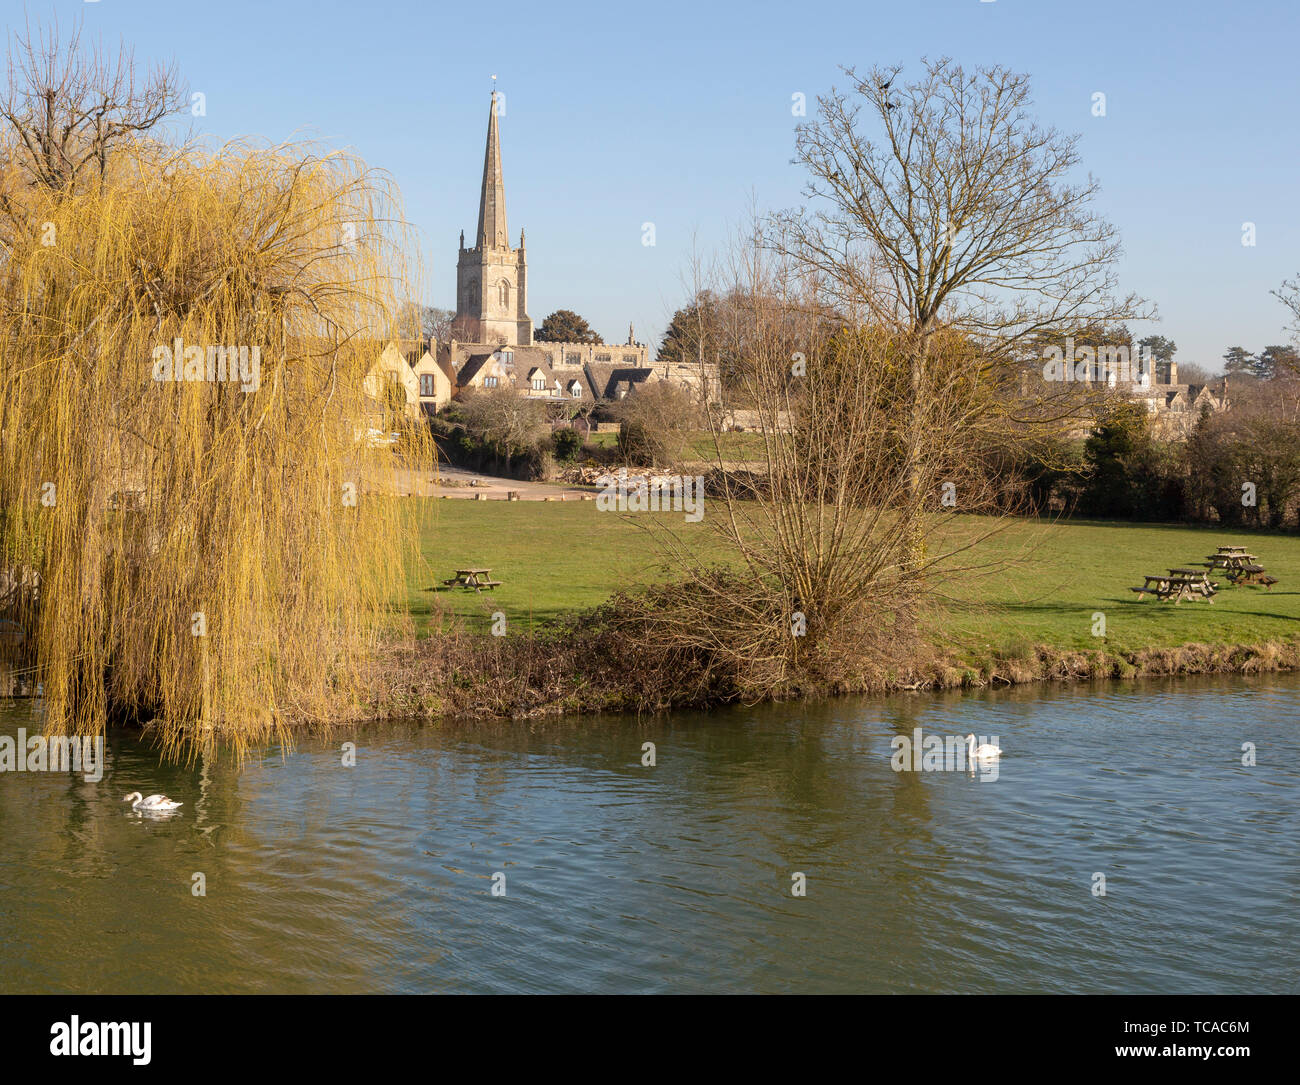 Church of Saint Lawrence, Lechlade, Gloucestershire, England, UK view from River Thames - Stock Image